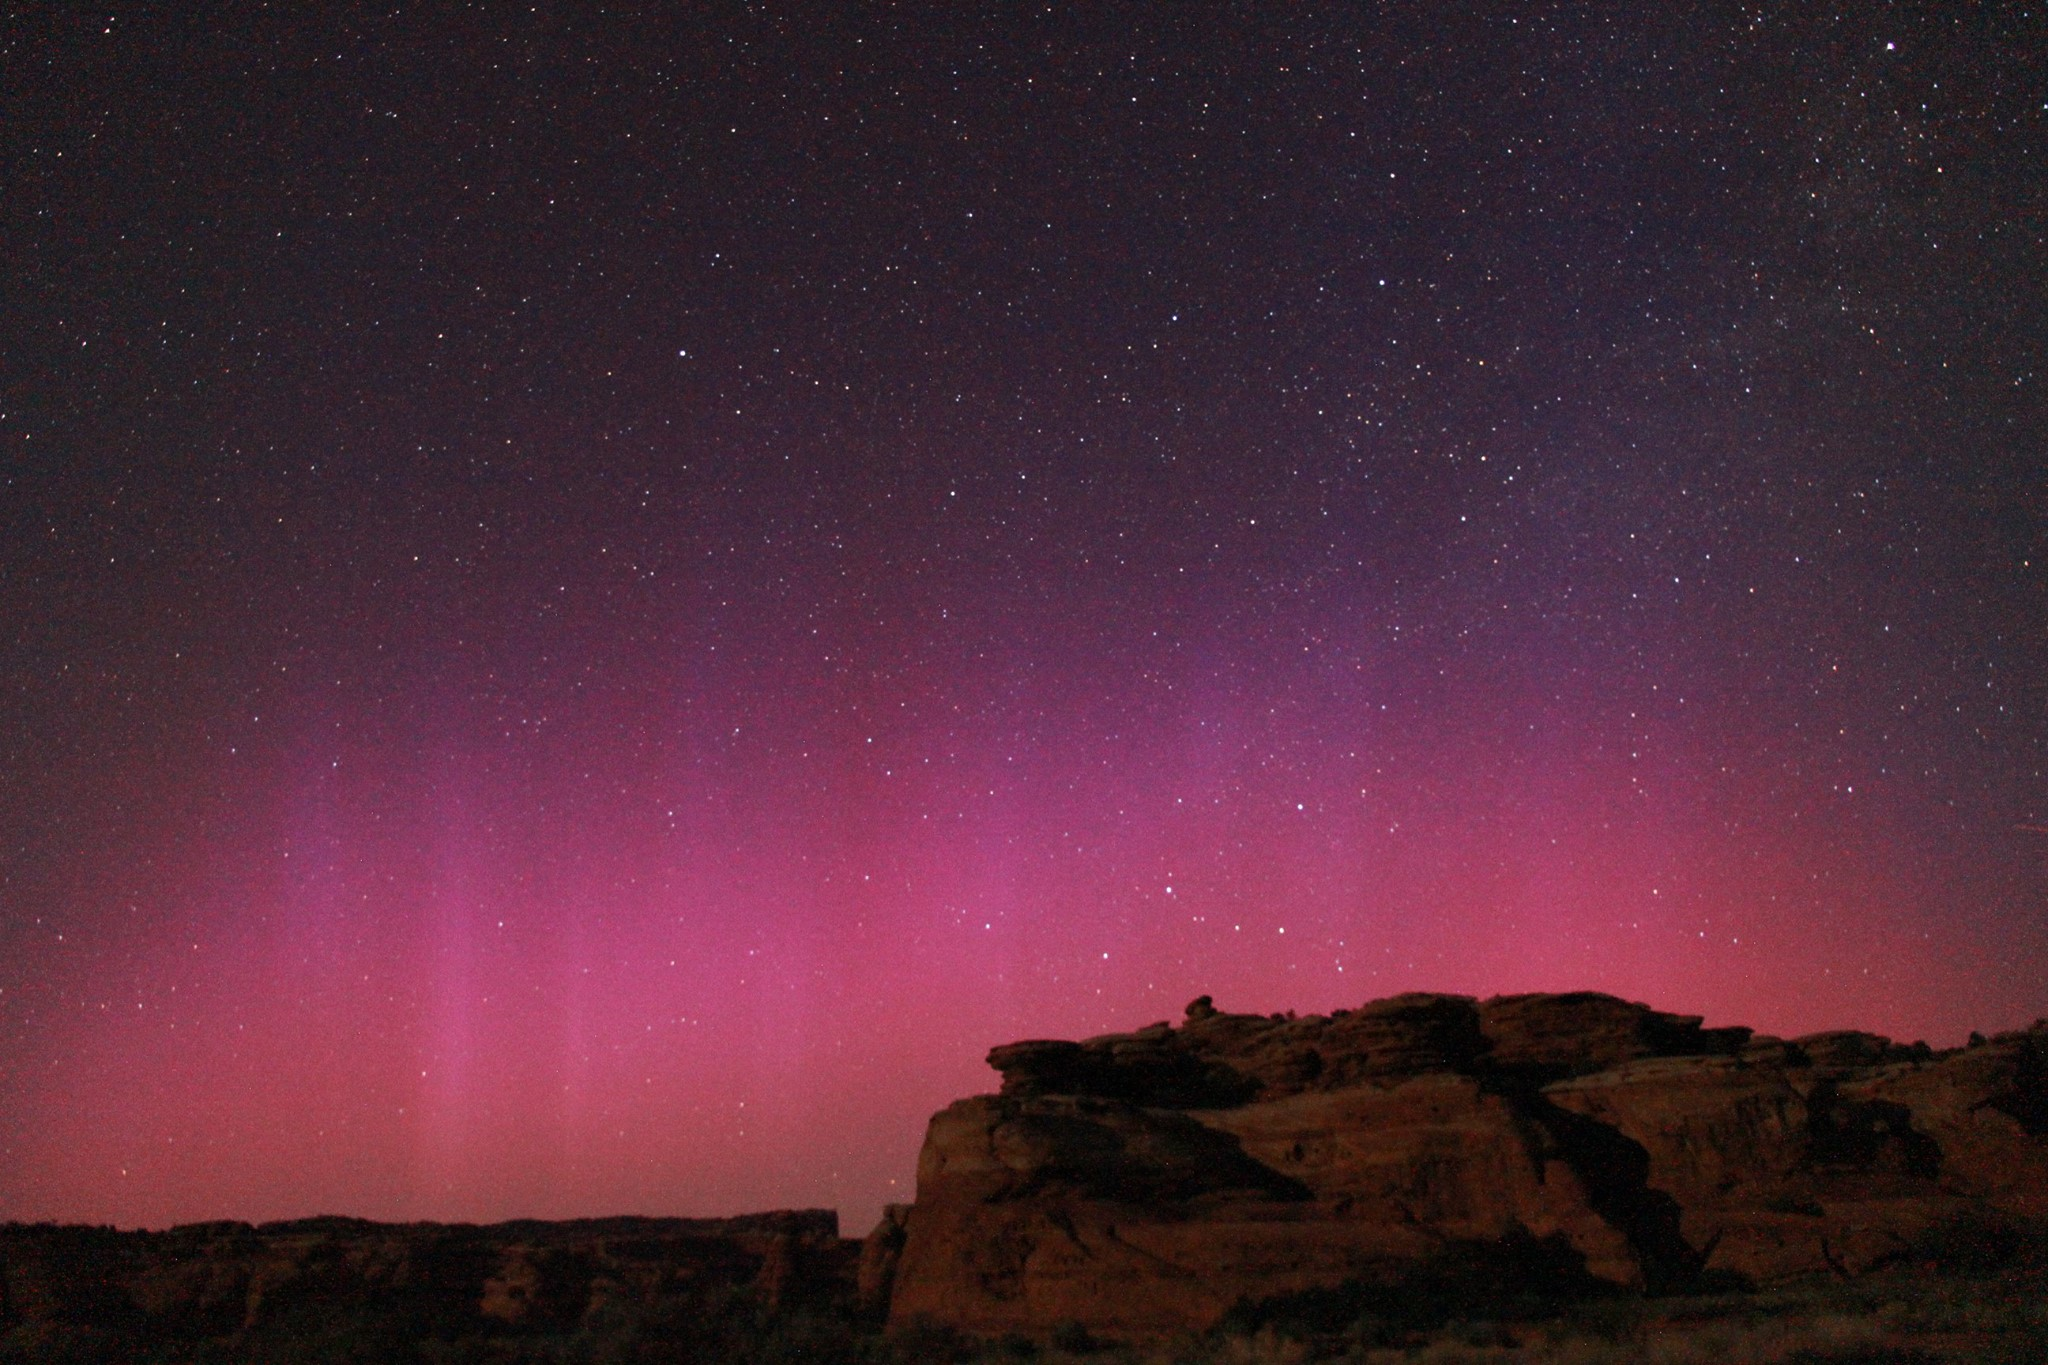 Dark Skies and Northern Lights Image